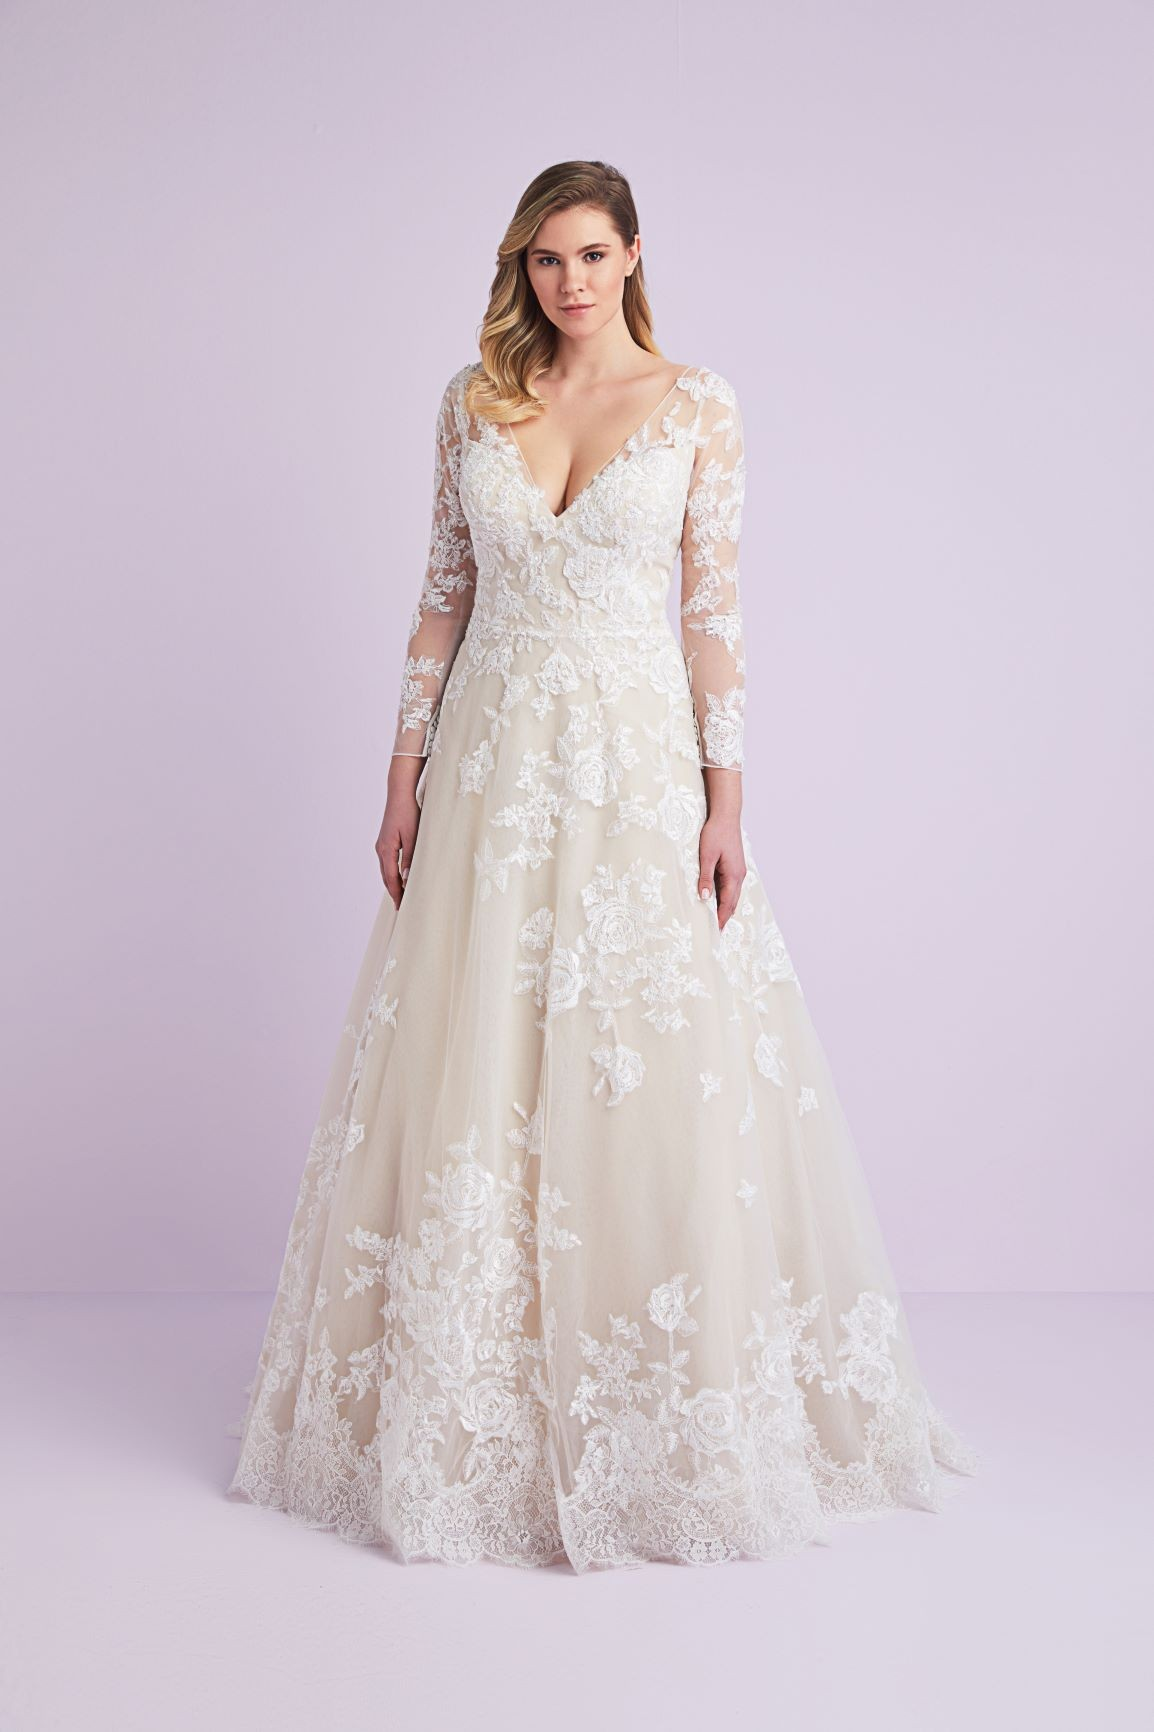 V-neck long sleeved ball gown with floral appliqué detail-wpd22336